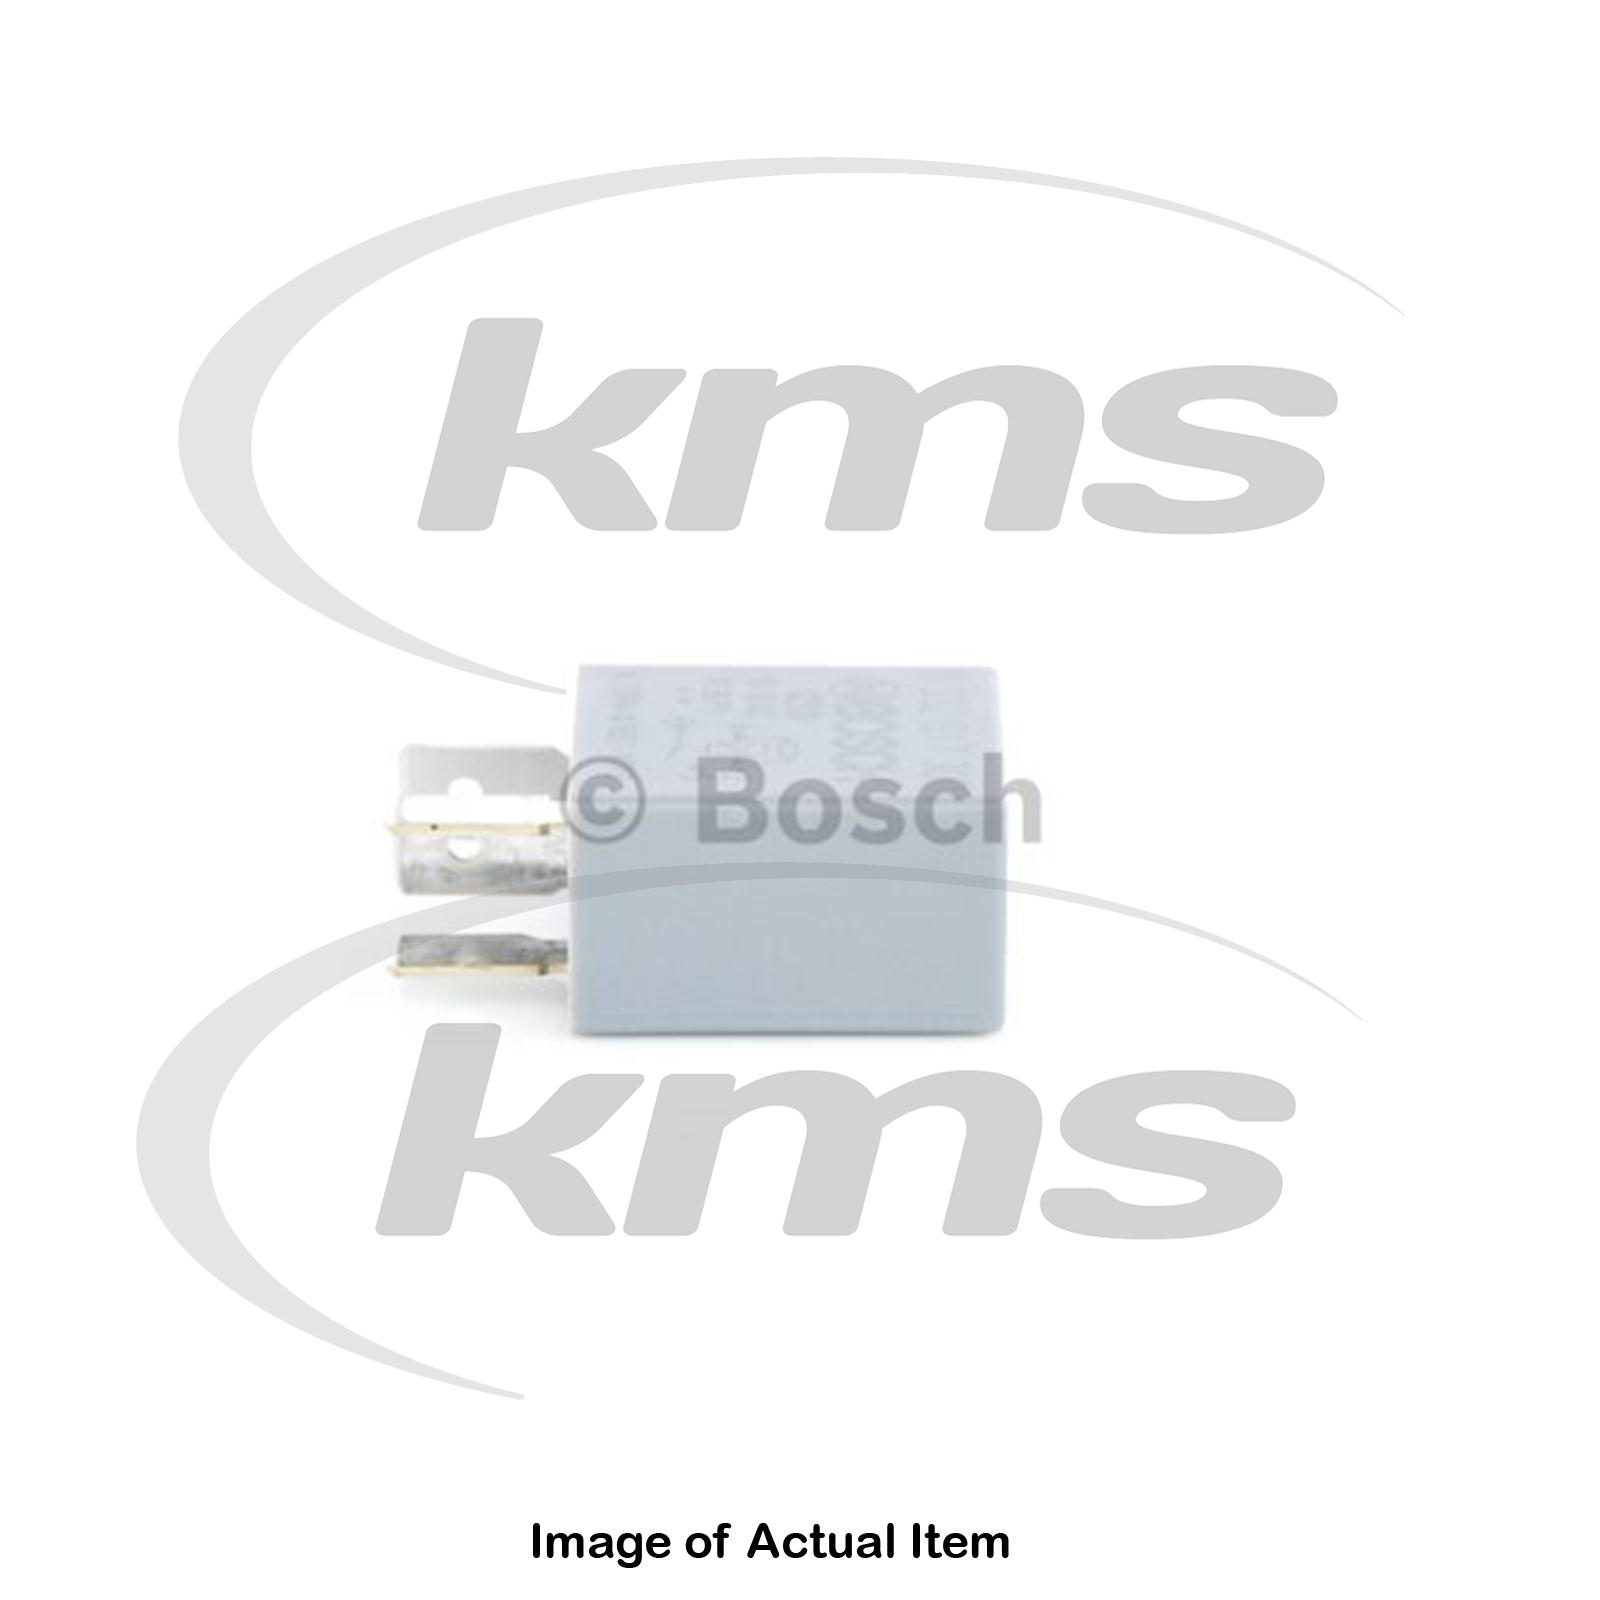 New era relay wiring diagram for spotlights the best wiring new genuine bosch main cur relay 0 332 017 300 top german asfbconference2016 Images